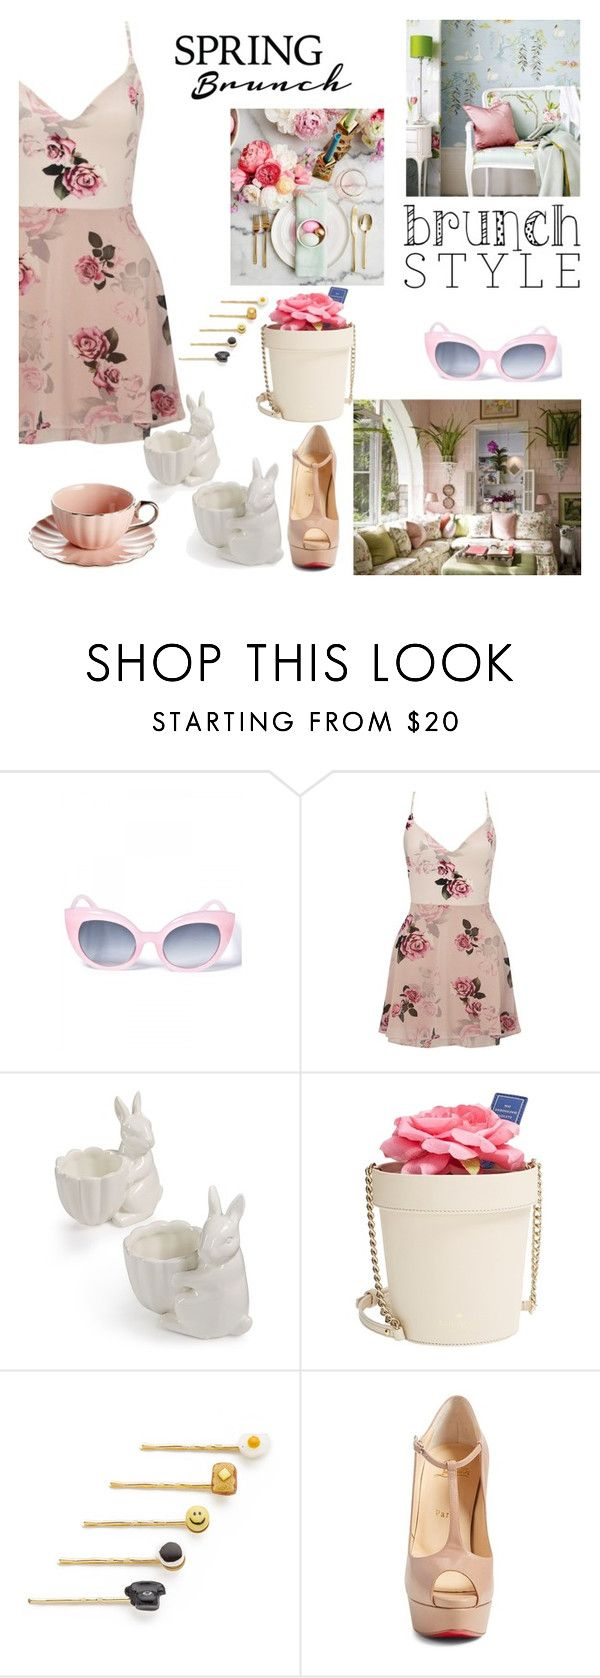 """""""Spring Brunch"""" by nicolevalents ❤ liked on Polyvore featuring Crap, Lipsy, Martha Stewart, Kate Spade, Venessa Arizaga and Christian Louboutin"""